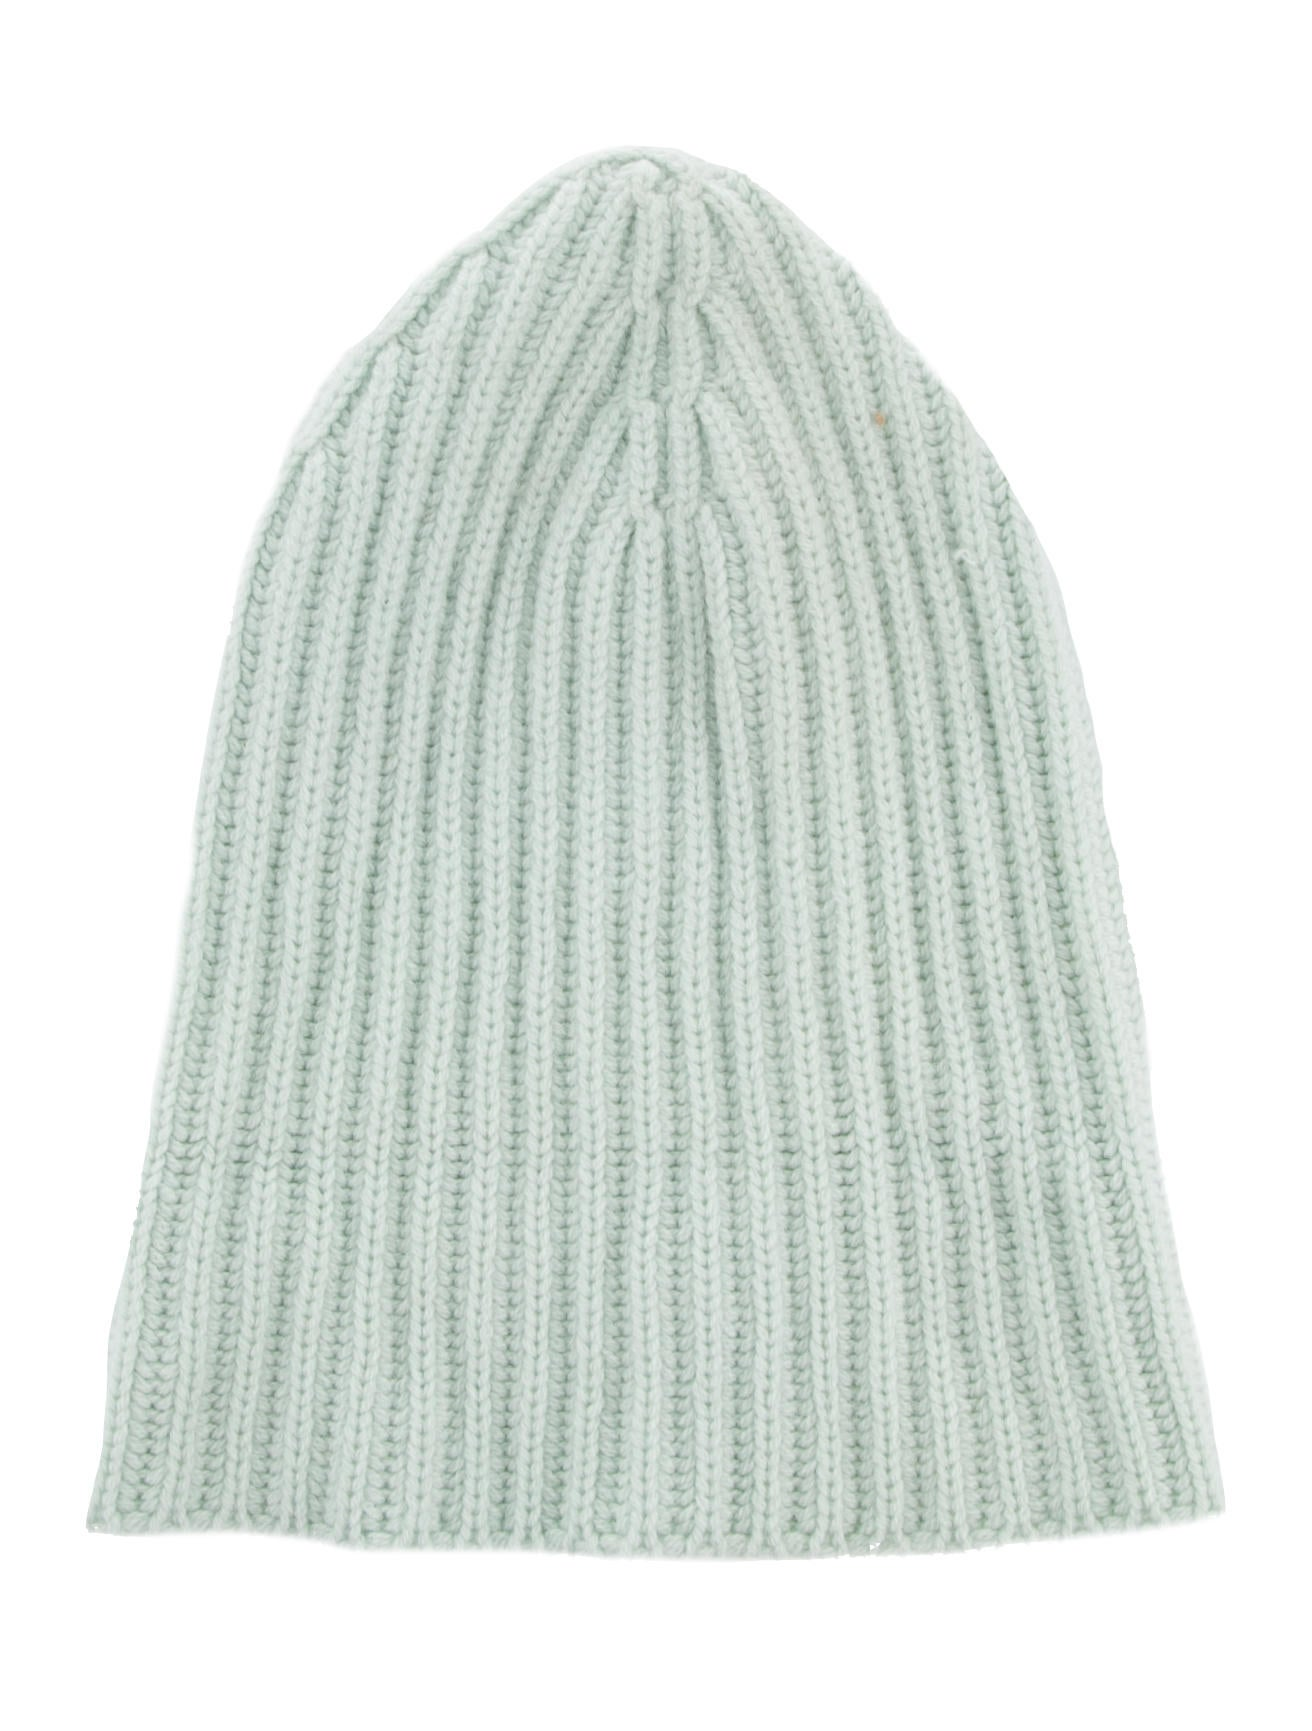 Knitting Pattern For Cashmere Beanie : Malo Cashmere Rib Knit Beanie - Accessories - W3M21399 ...